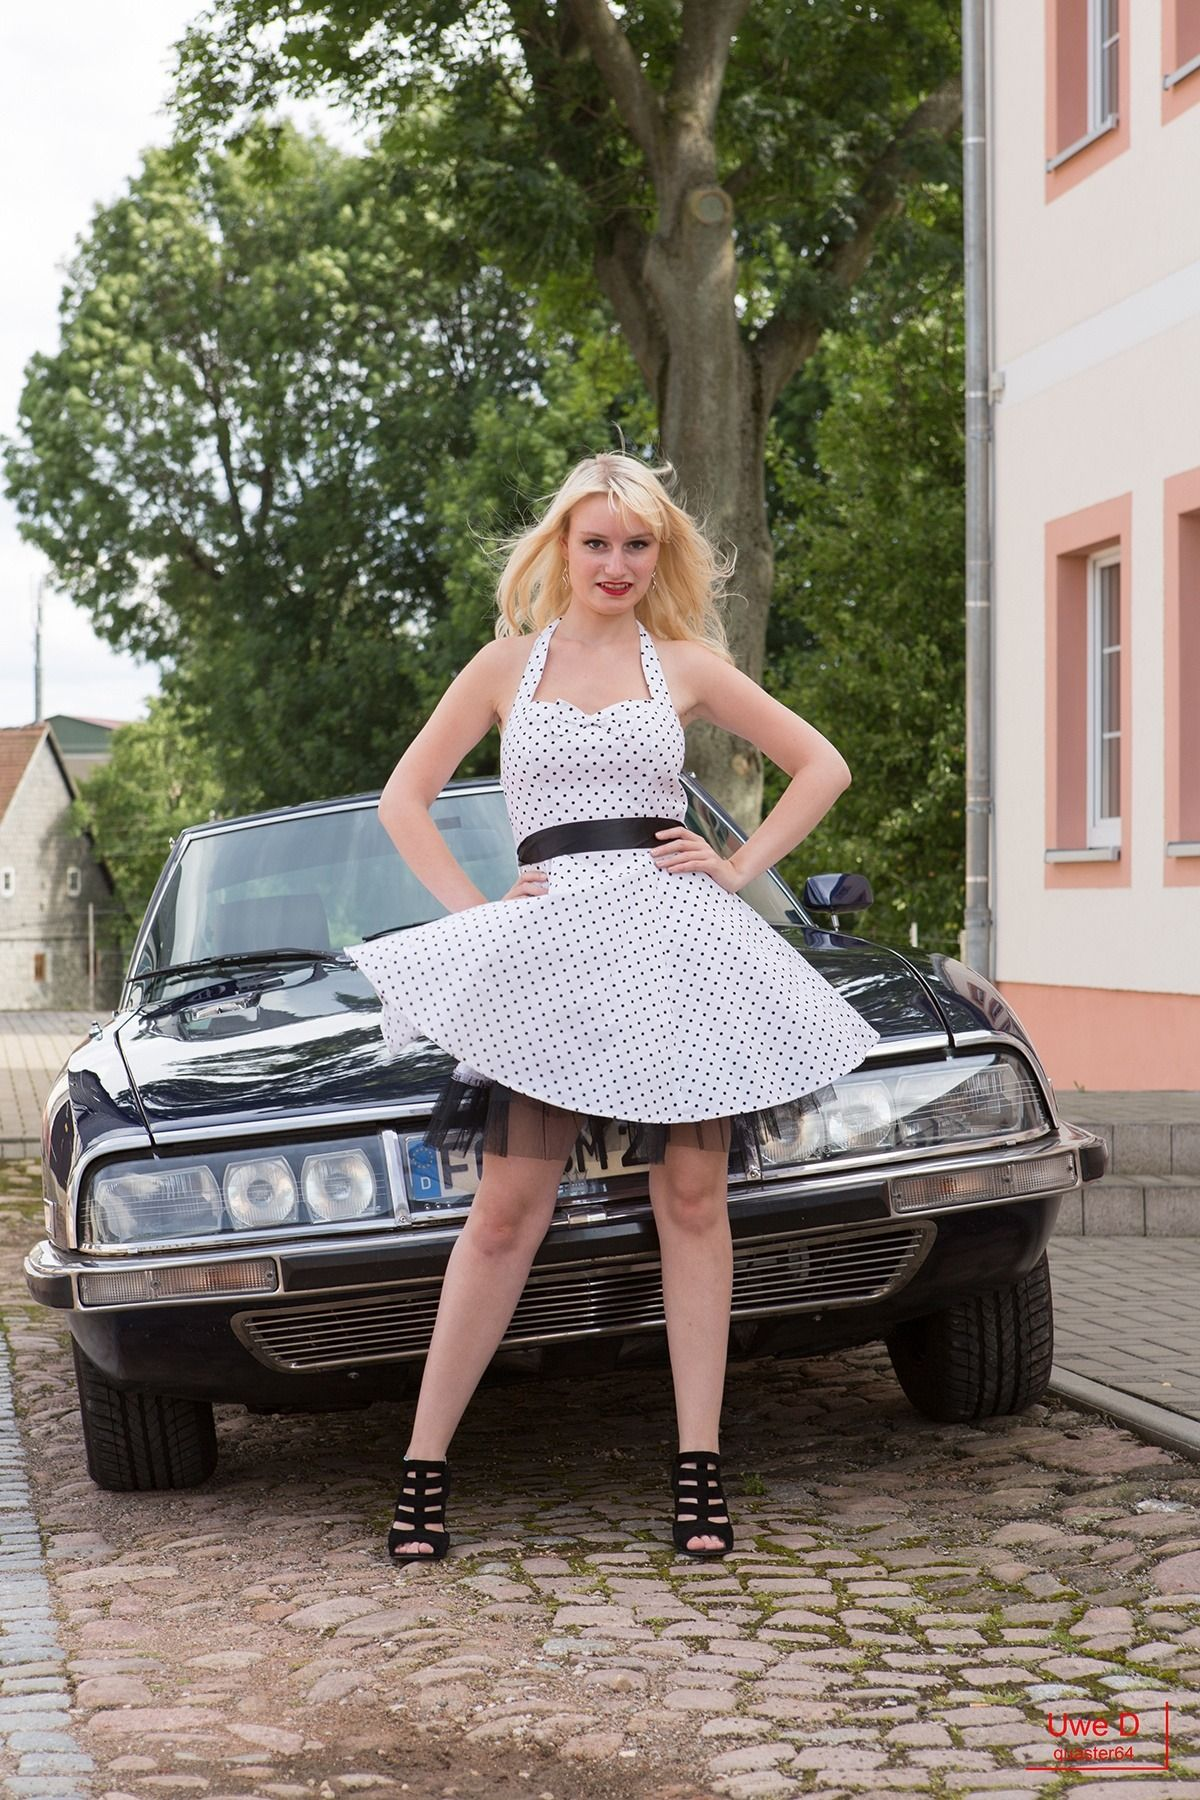 Citroen ladies (With images)   Citroen, Motorcycle girl, Lady